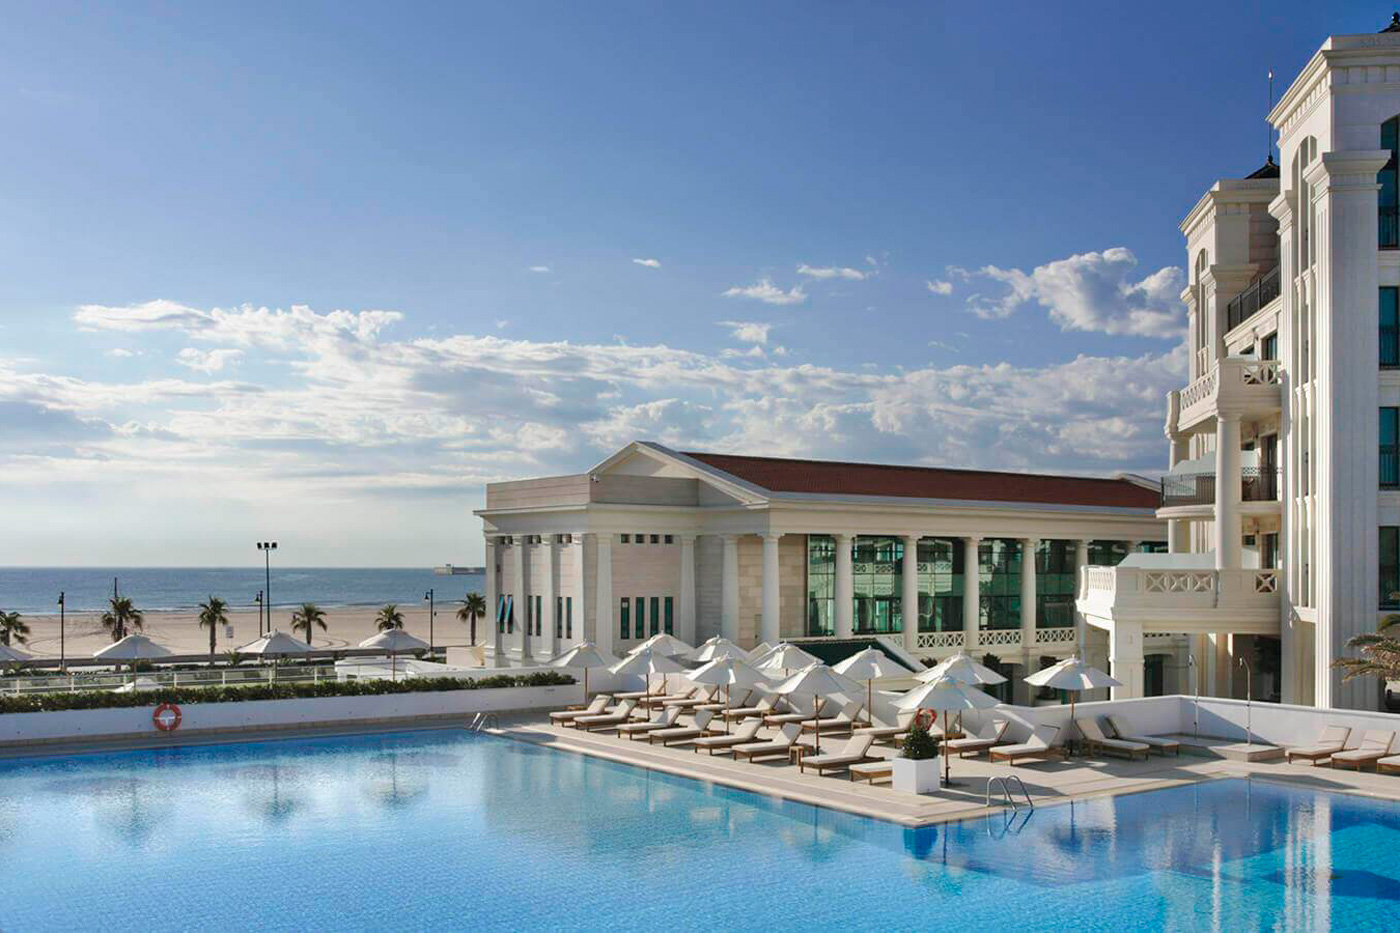 Jornadas educativas Edelvives 2019. Valencia.